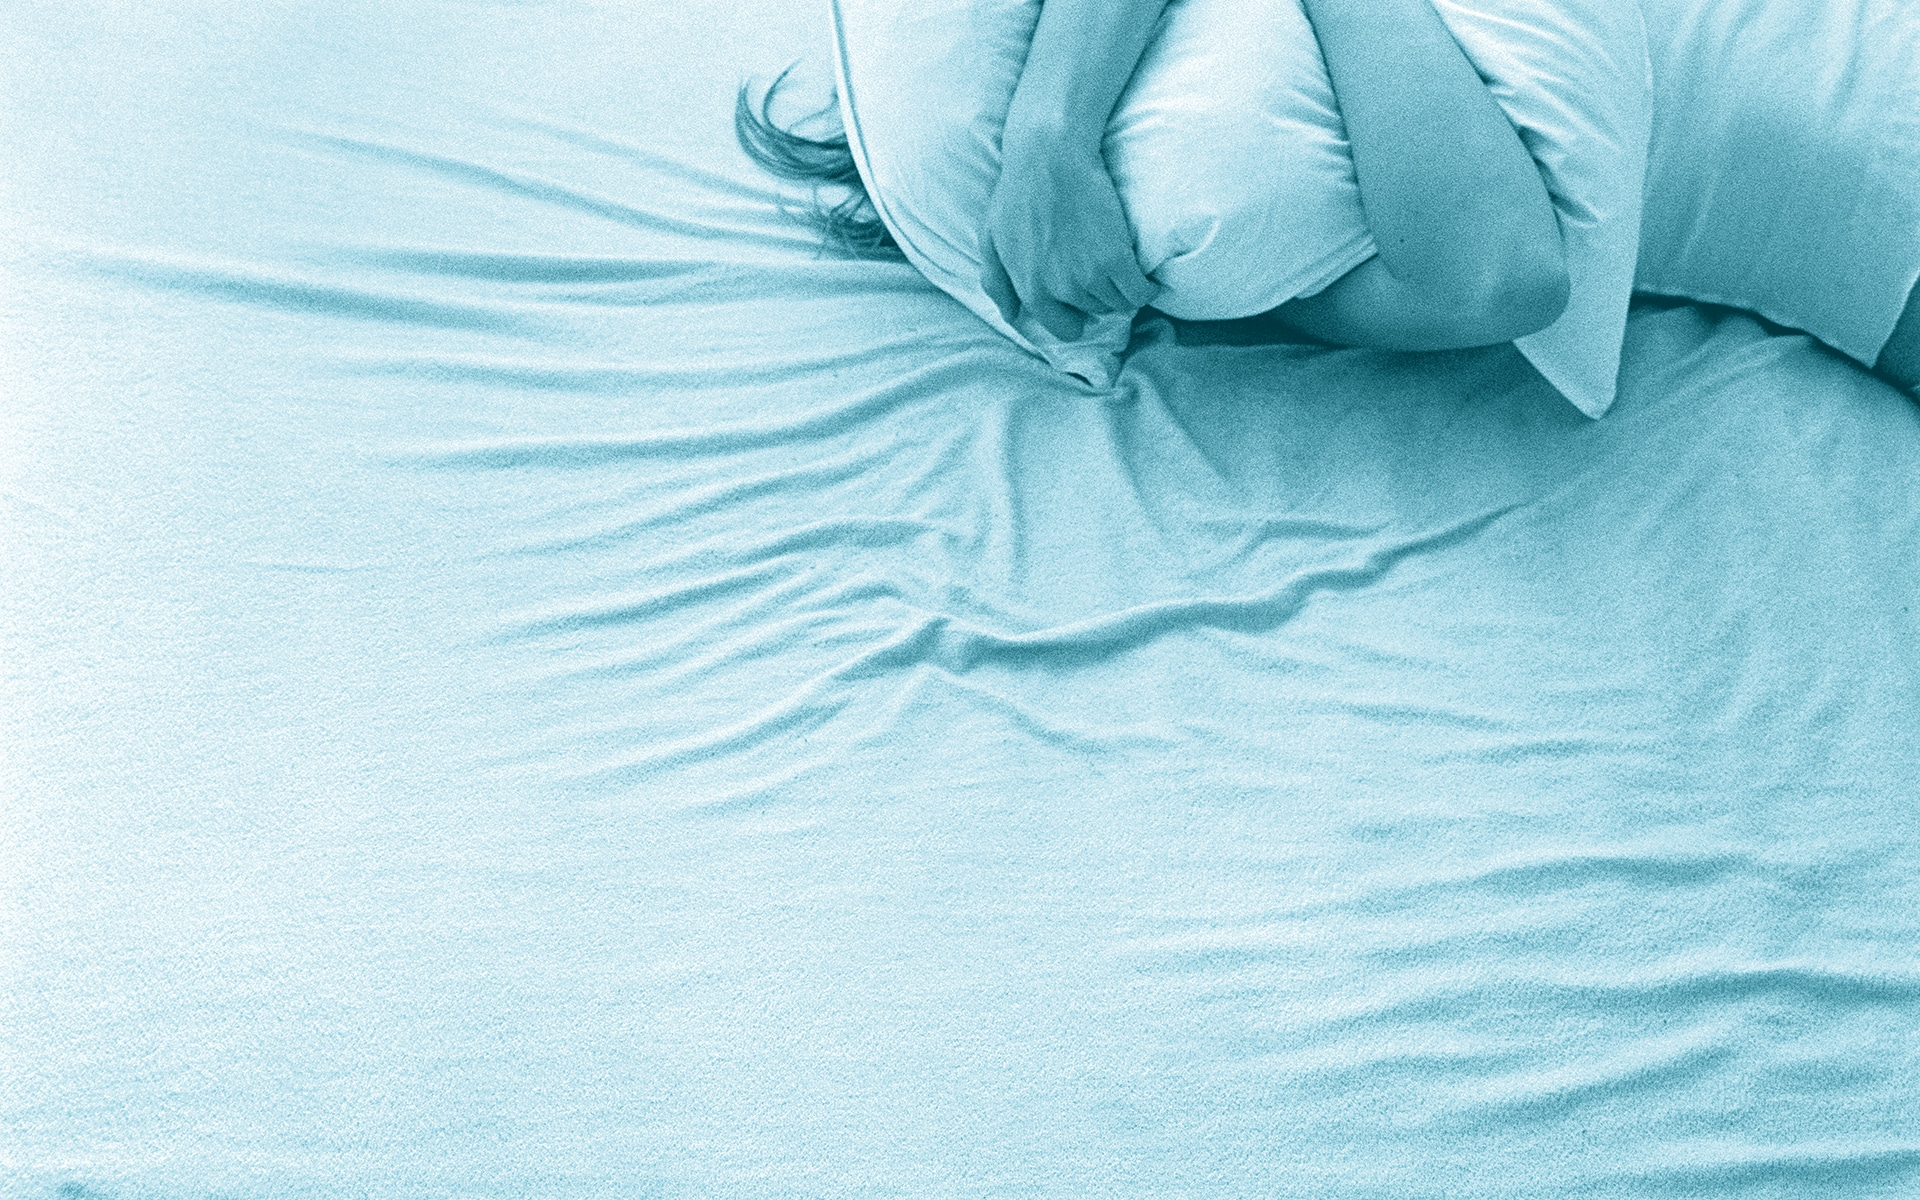 woman in bed holding pillow over face, not wanting to be seen